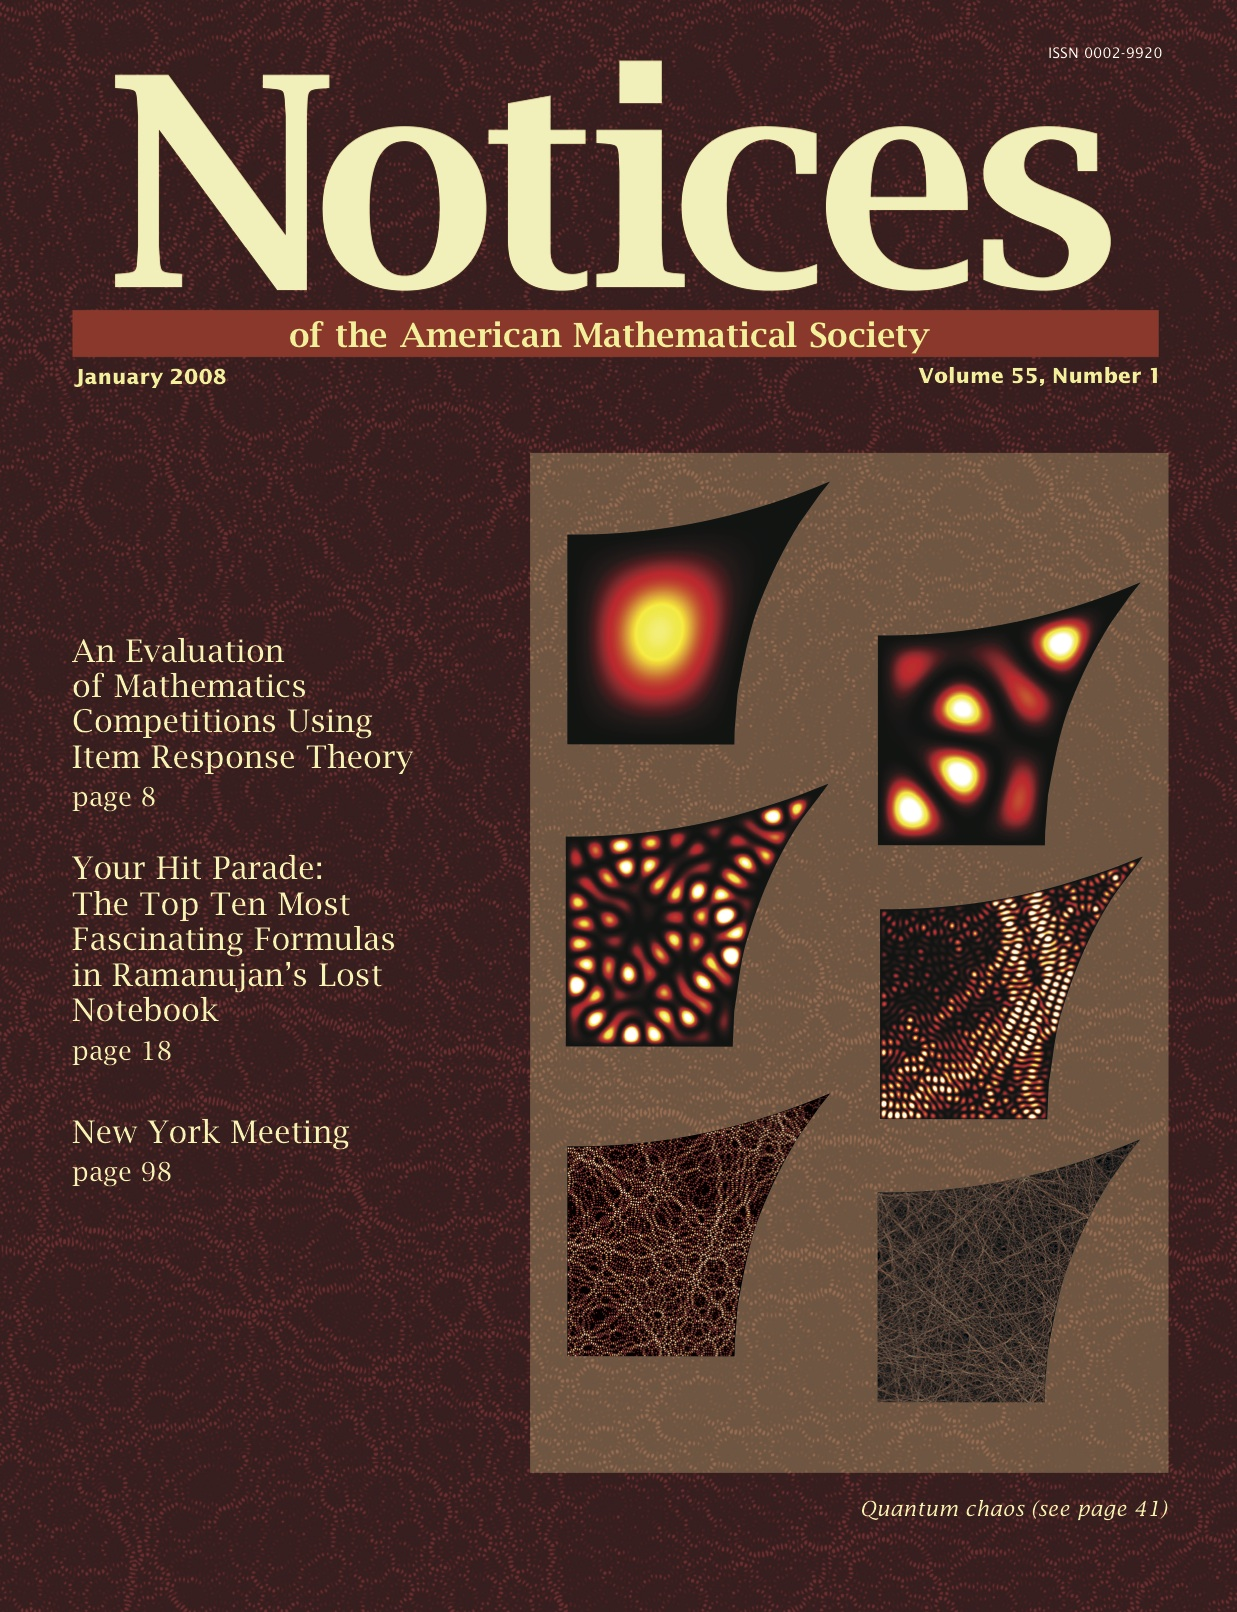 notices cover image